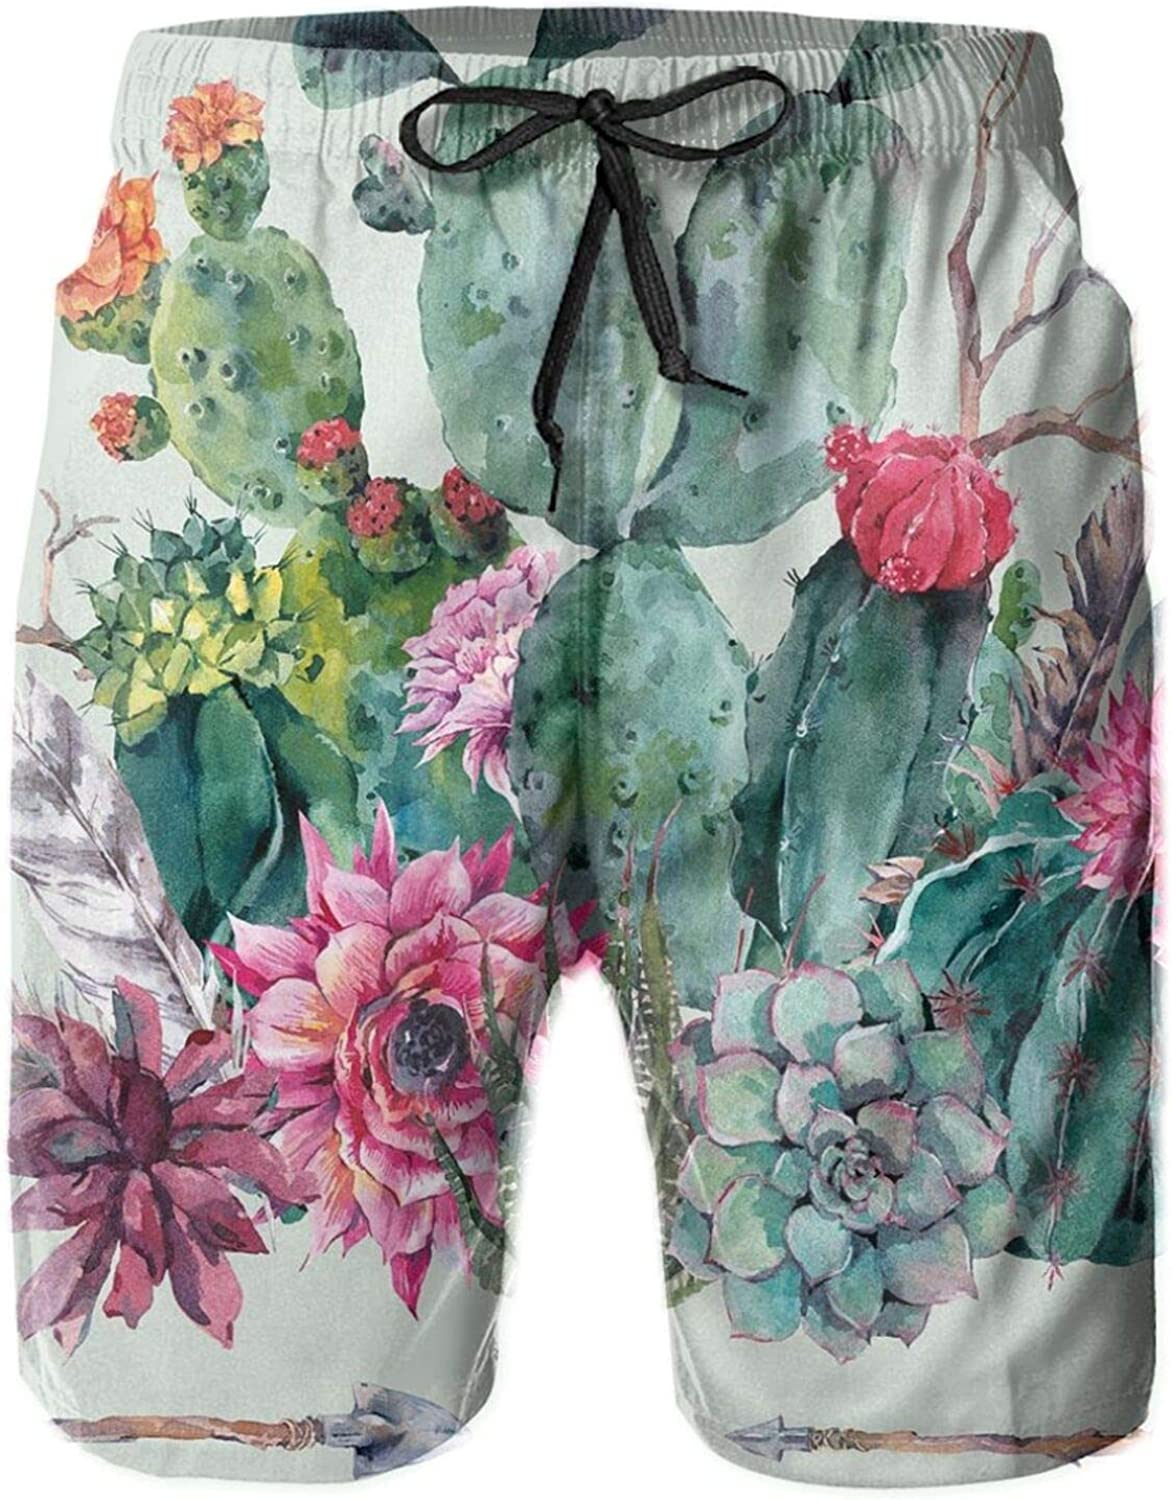 Spring Garden with Boho Style Bouquet of Thorny Plants Blooms Arrows Feathers Theme Printed Beach Shorts for Men Swim Trucks Mesh Lining,XL